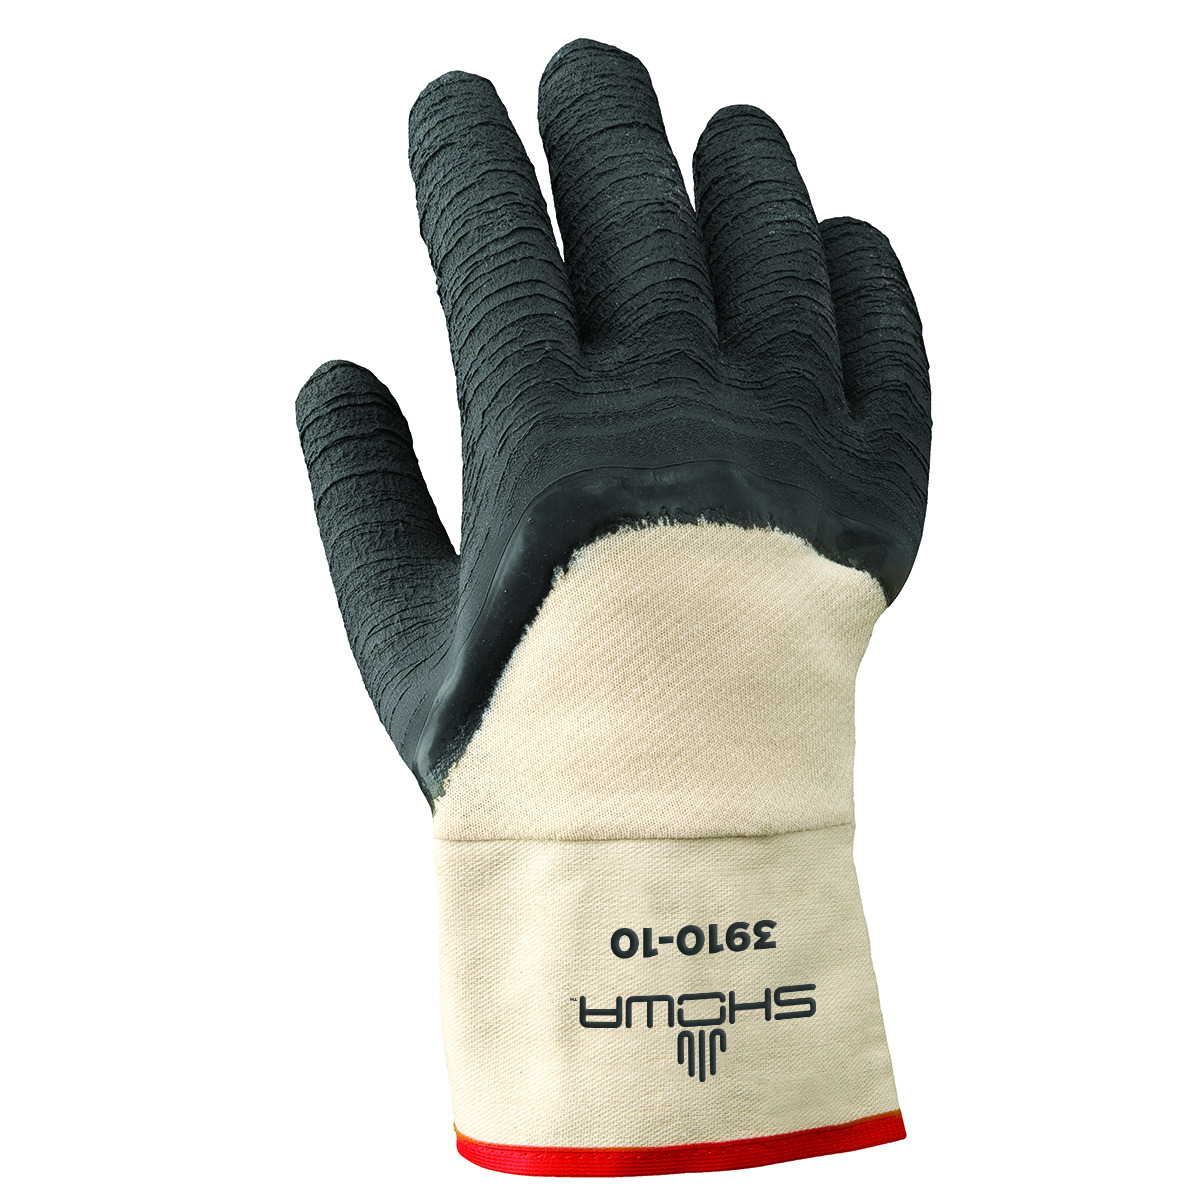 SafetEquip: Safety Equipment, Food Processing Supplies